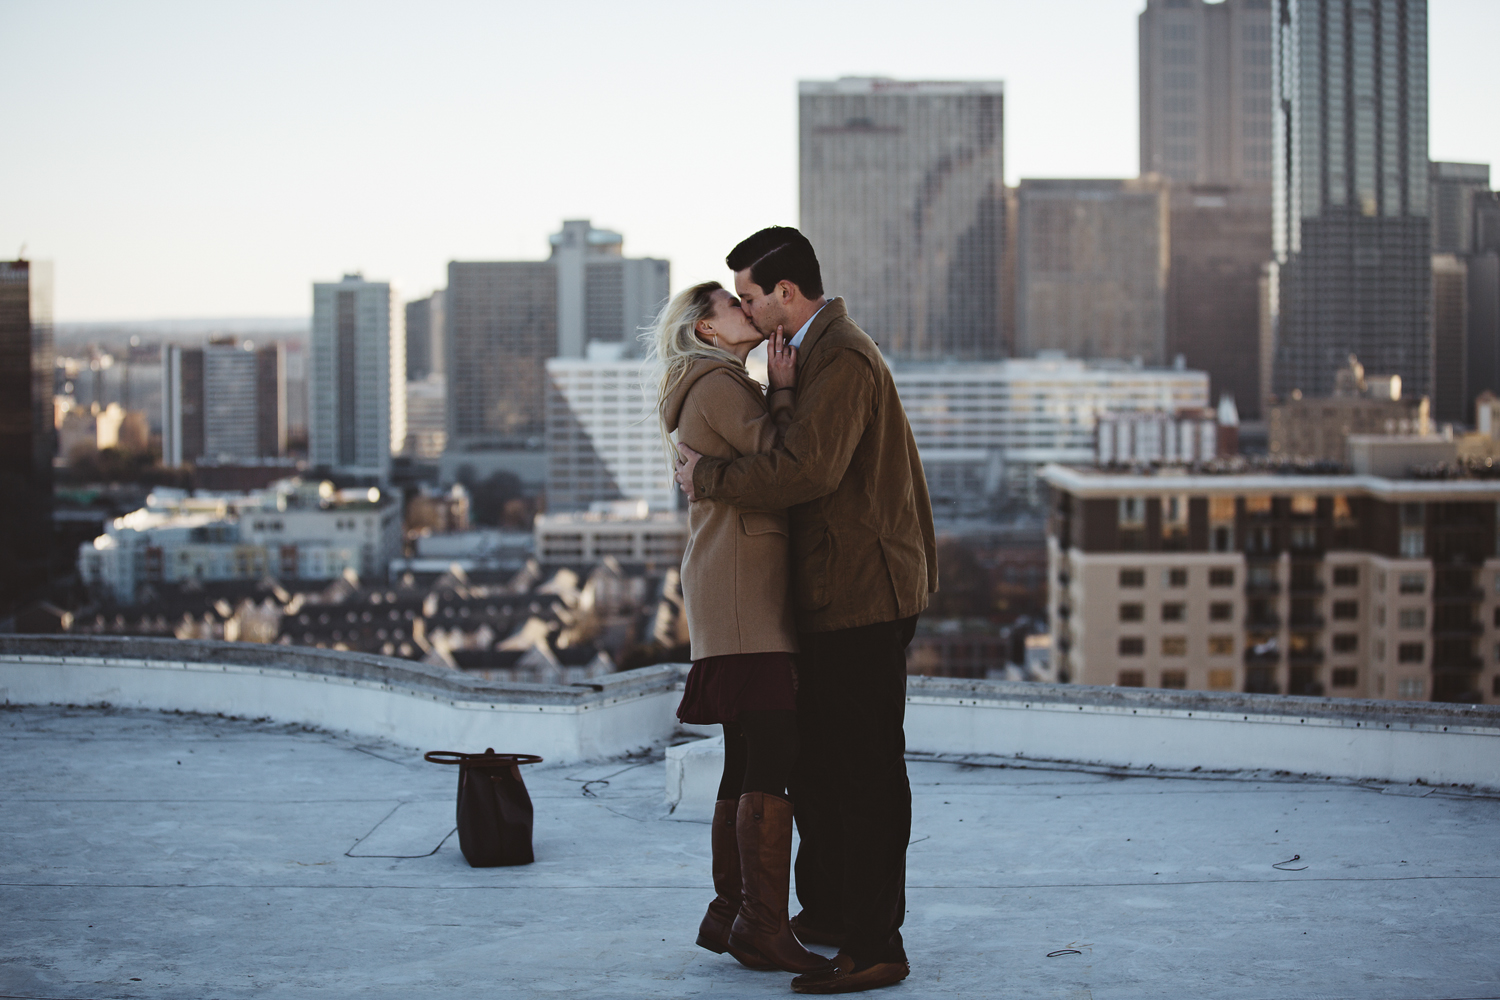 KDP_claire&drew - the proposal-37.jpg